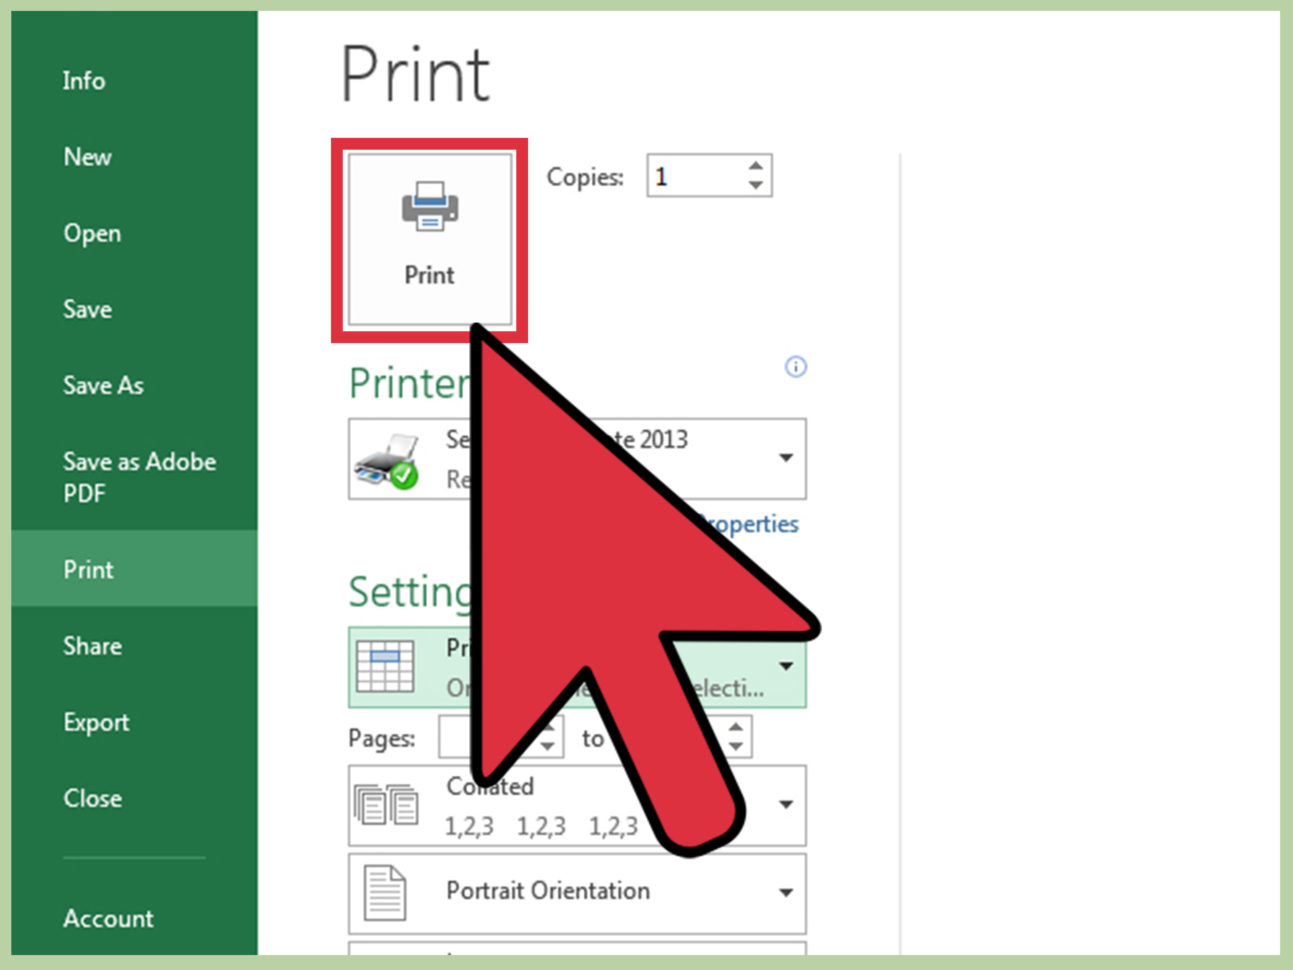 Copy Spreadsheet Intended For 3 Ways To Print Part Of An Excel Spreadsheet  Wikihow